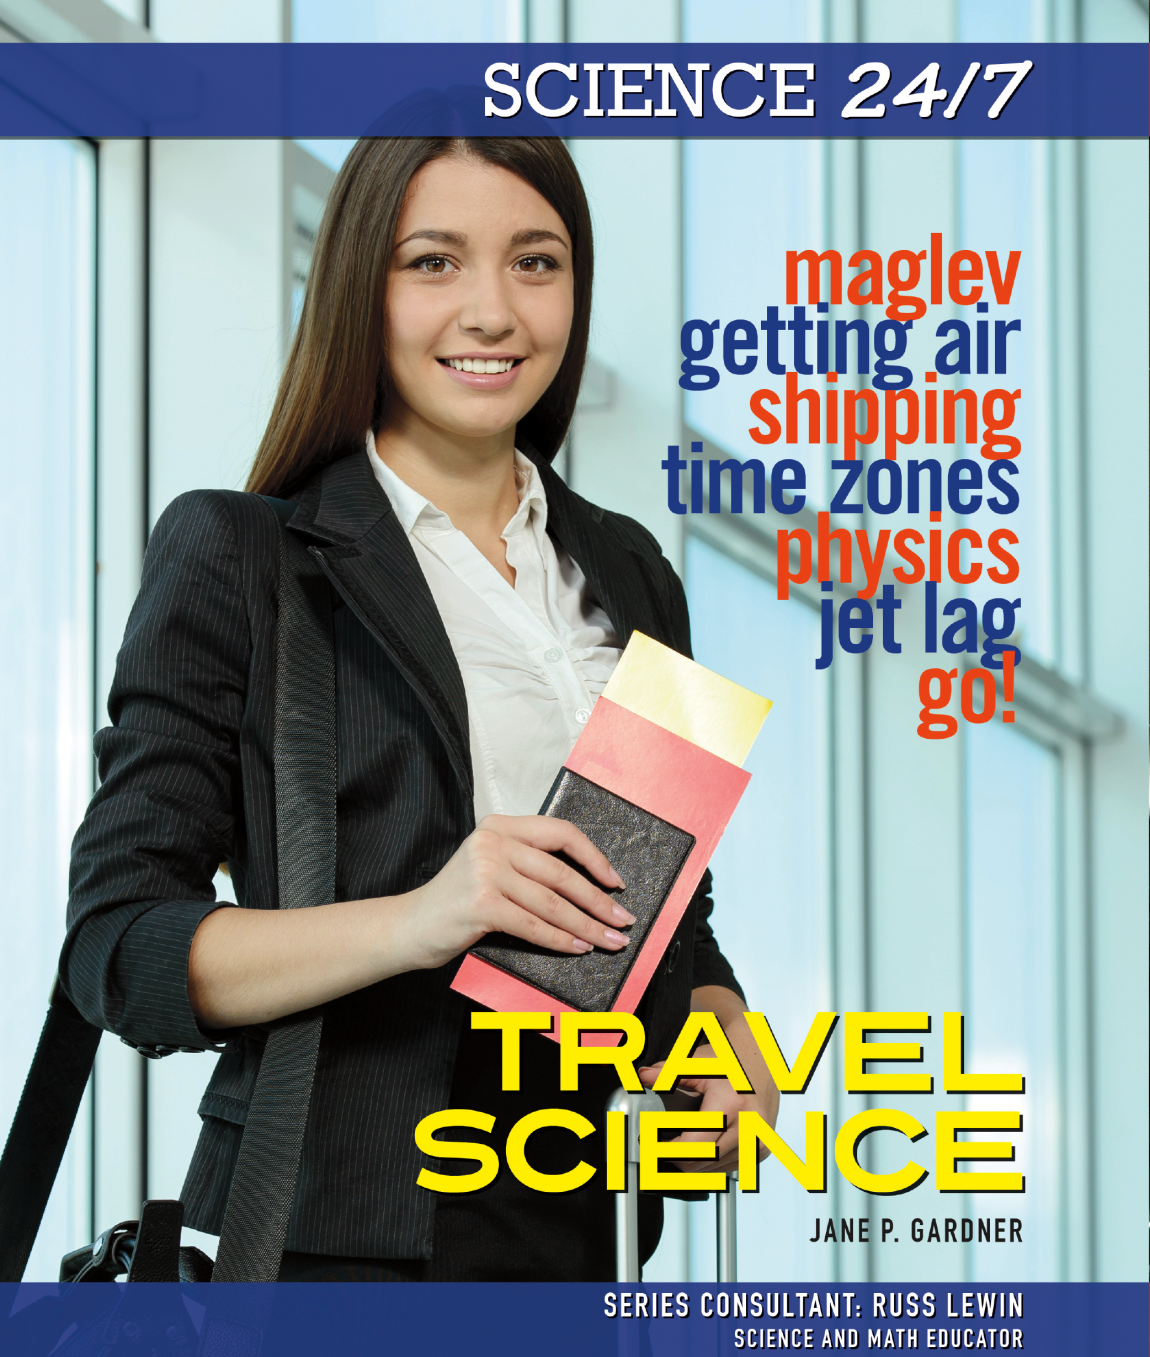 travel-science-01.png